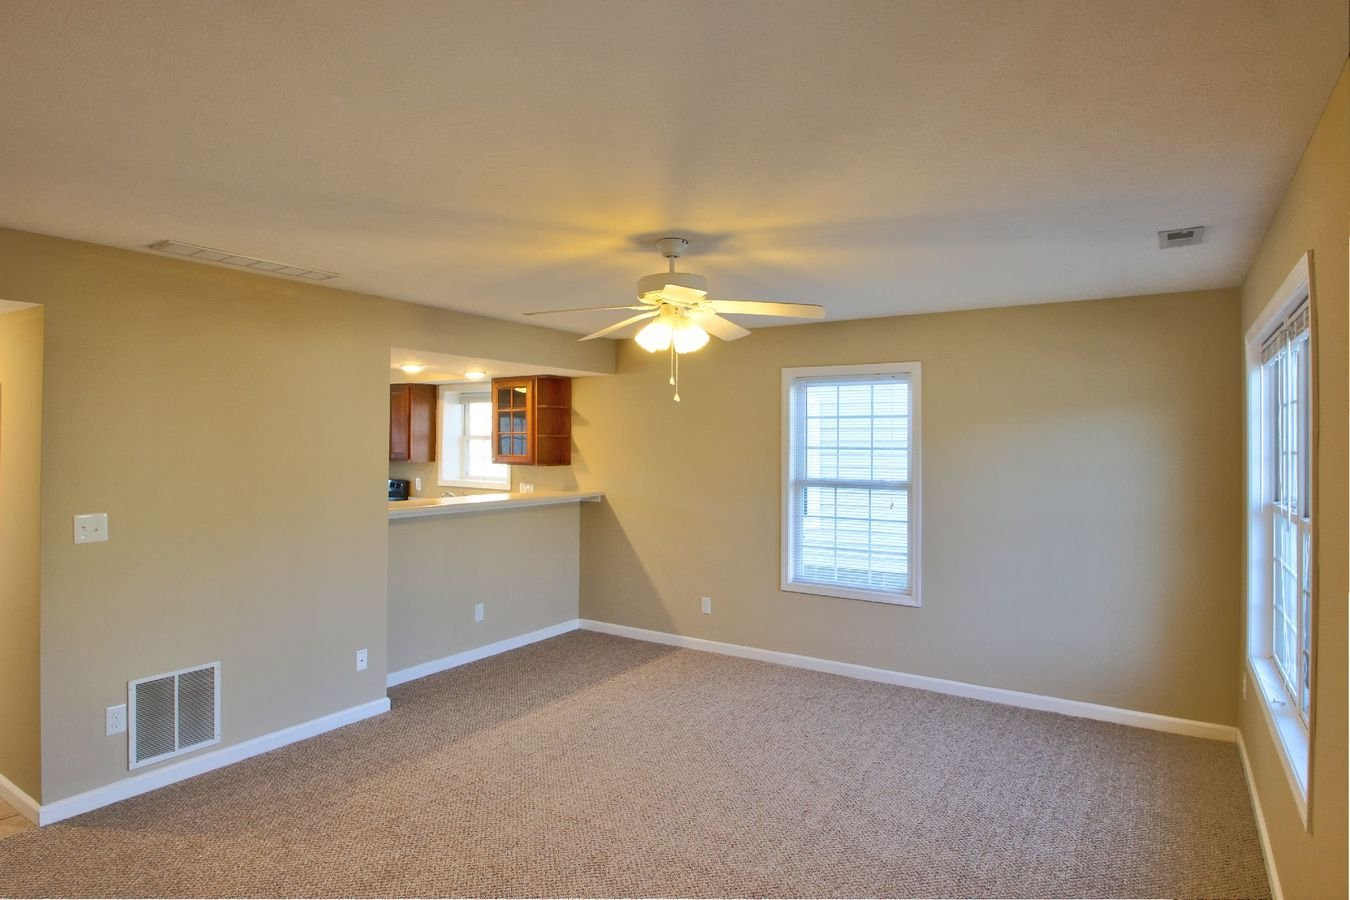 3 Bedrooms 2 Bathrooms Apartment for rent at Meadowcreek Neighborhood in Bloomington, IN